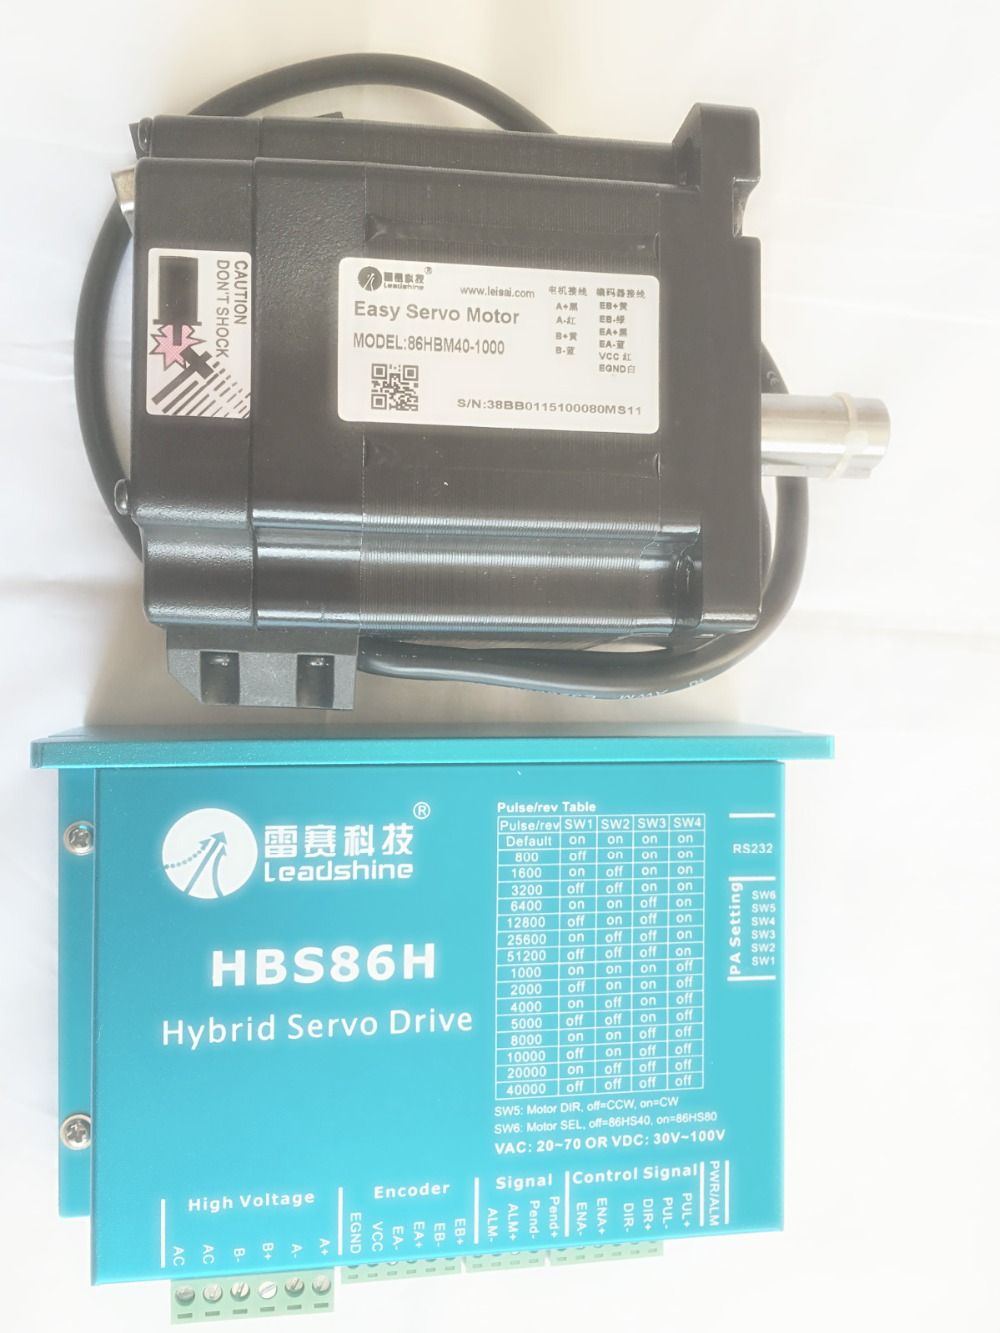 New Leadshine Closed Loop Stepper Drive HBS86H servo motor 86HBM40-1000 with 1000 line encoder HBS806  ES-D808 nema23 3phase closed loop motor hybrid servo drive hbs507 leadshine 18 50vdc new original